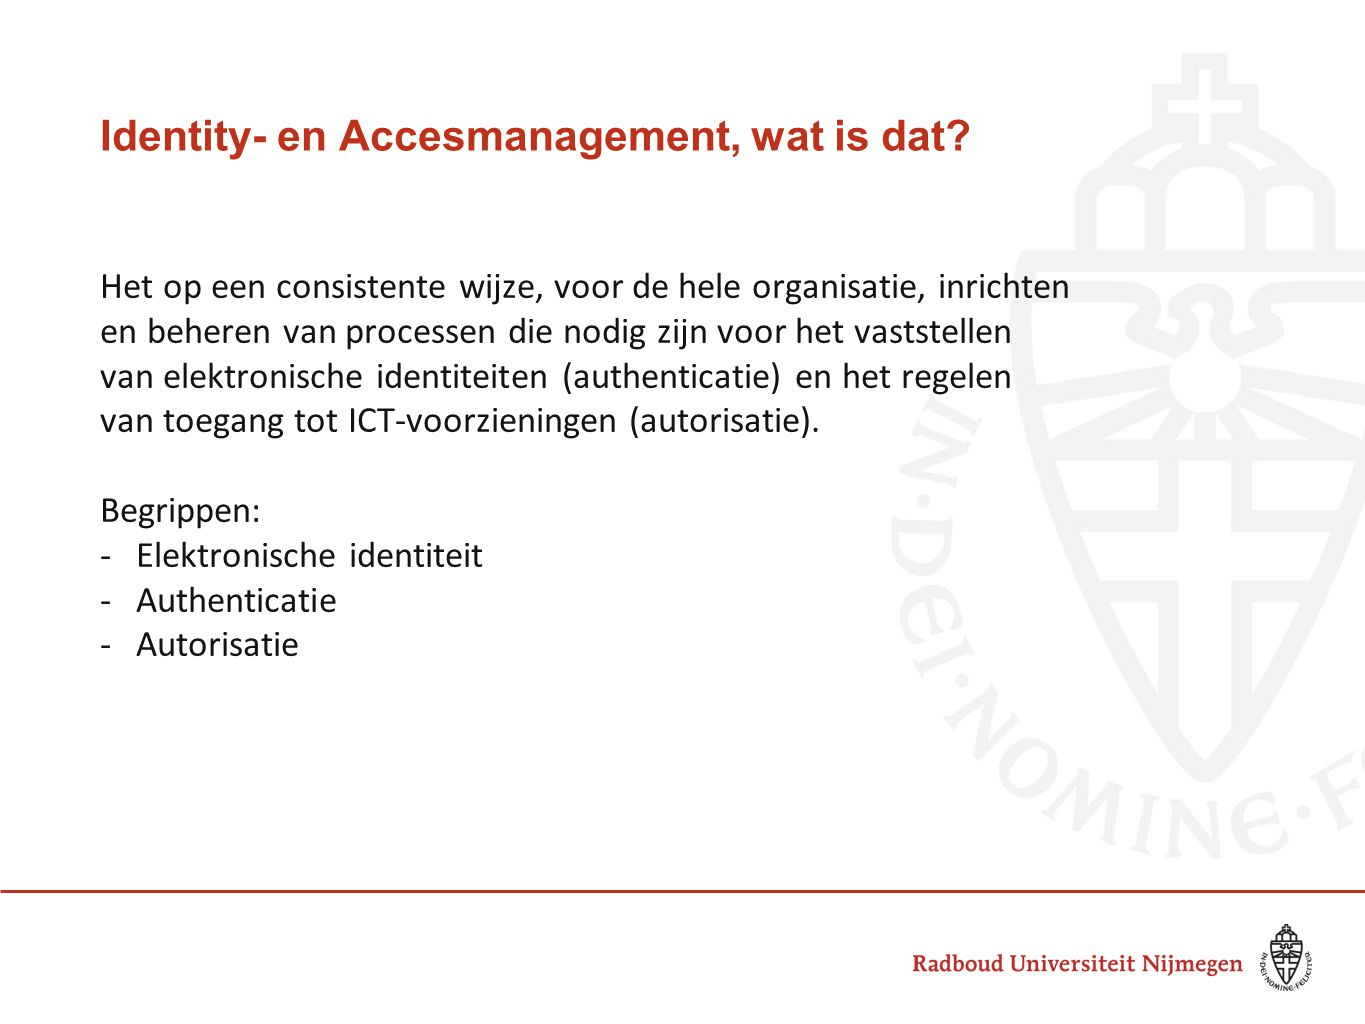 Identity- en Accesmanagement, wat is dat